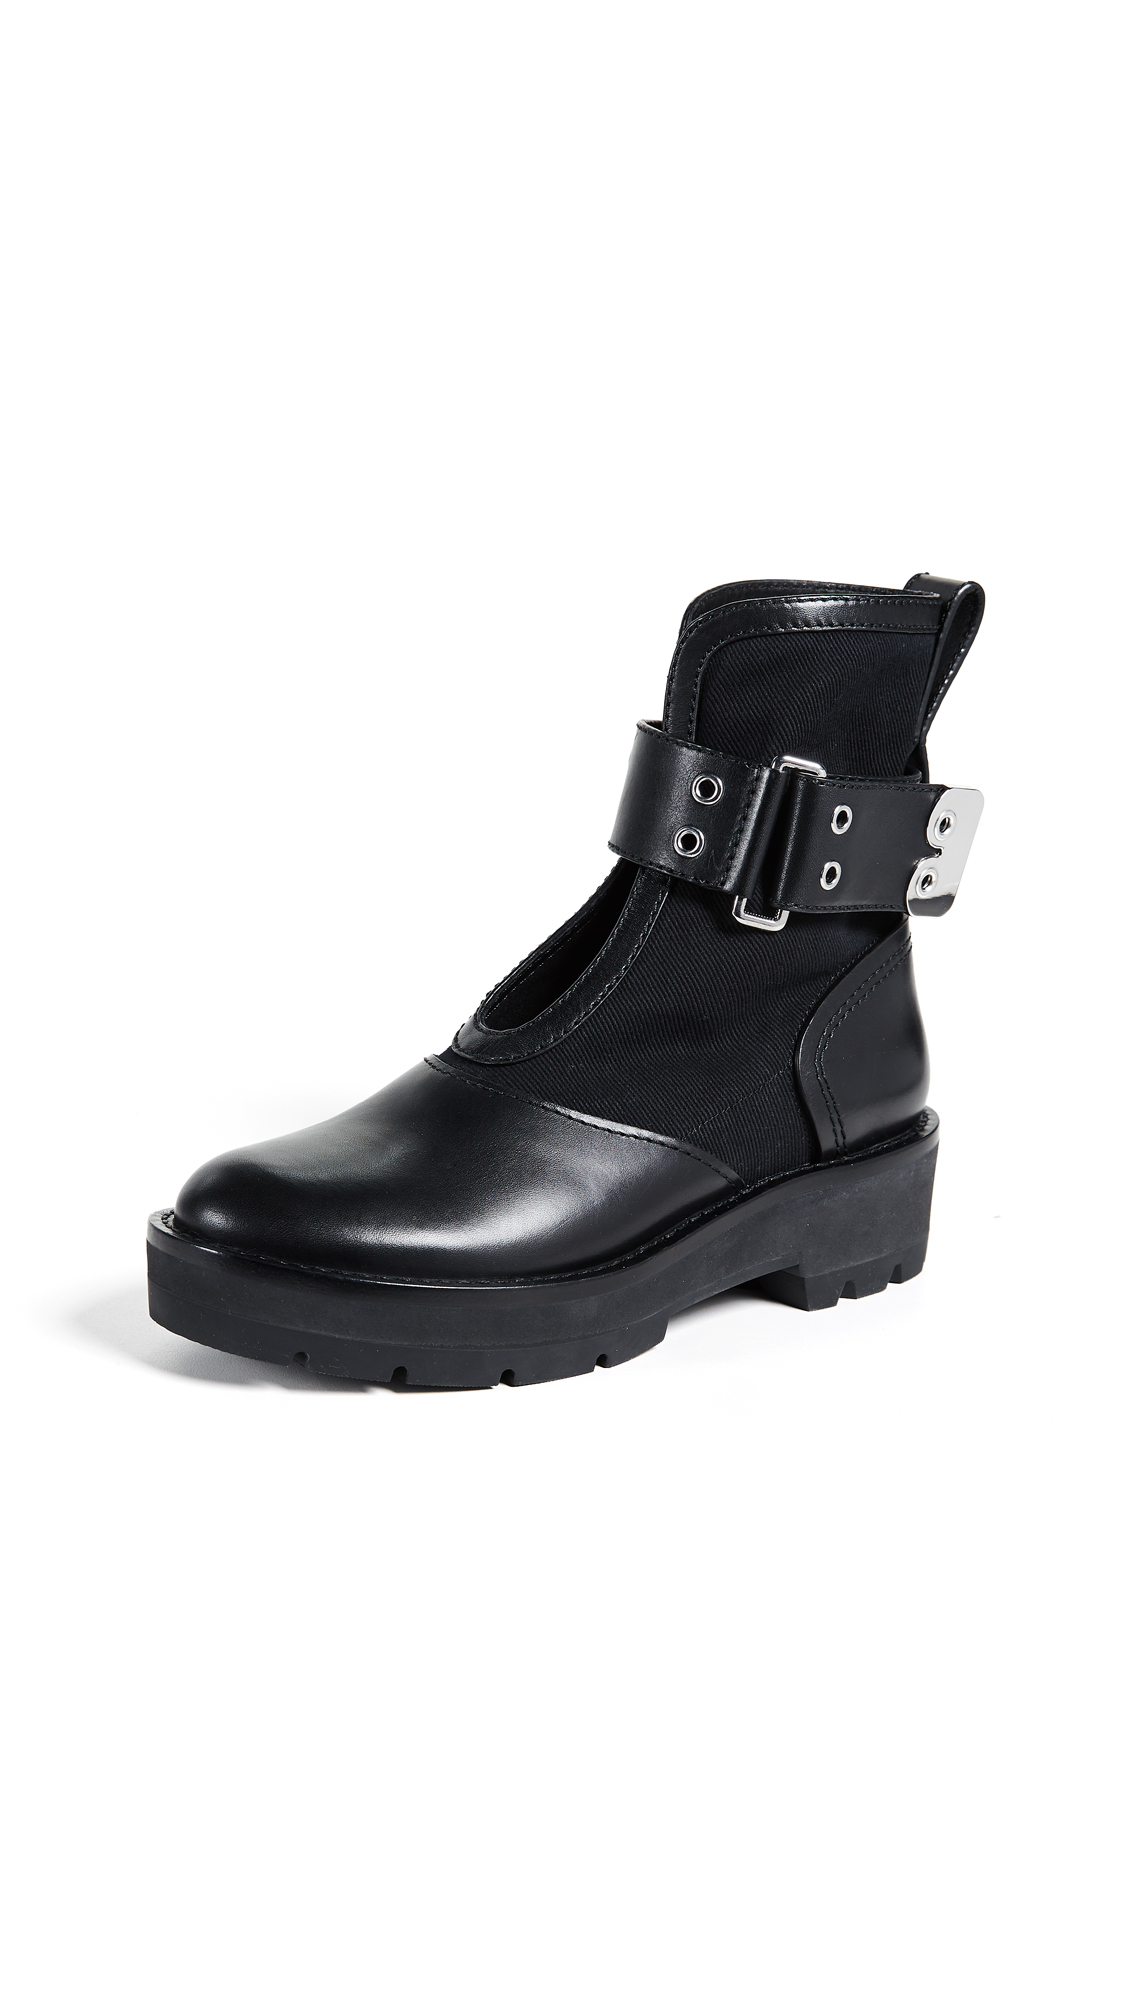 3.1 Phillip Lim Cat Combat Boots - Black